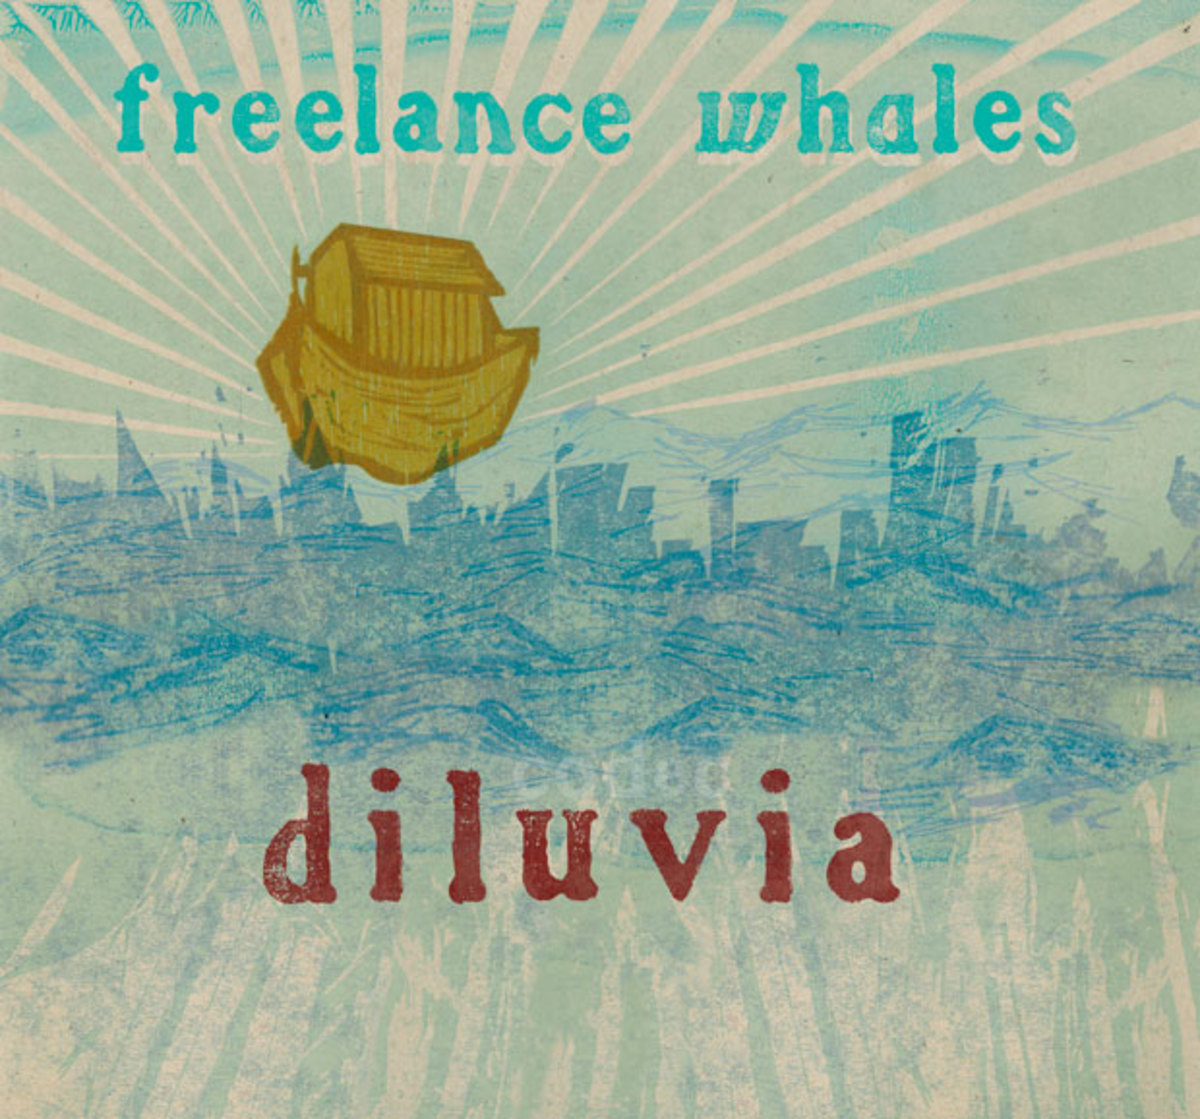 Freelance Whales - Diluvia  Songwriting - Multi Instrumentalist